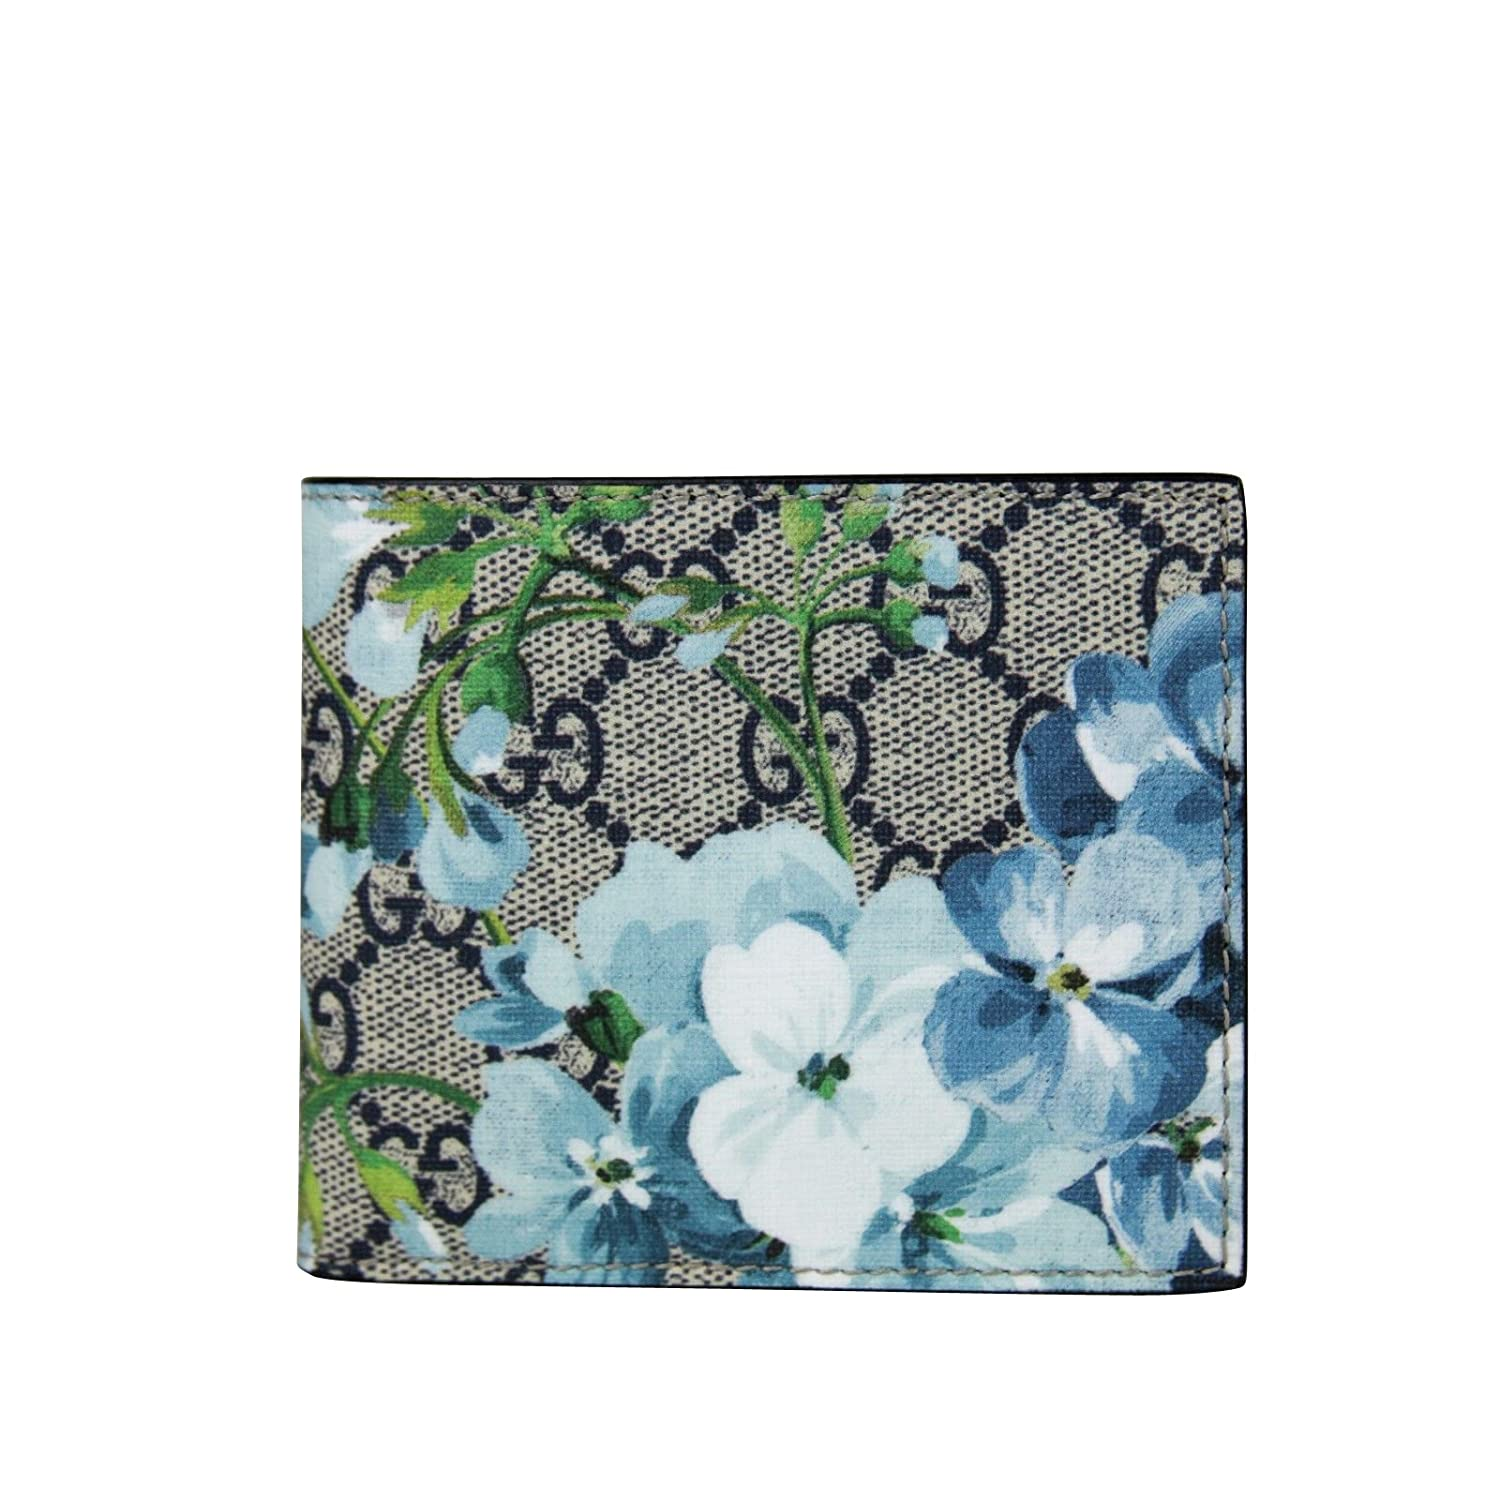 ed3a5553108d Gucci Bifold Beige/Blue GG Supreme Canvas Wallet With Blue Floral Print  408666 8499: Amazon.co.uk: Clothing